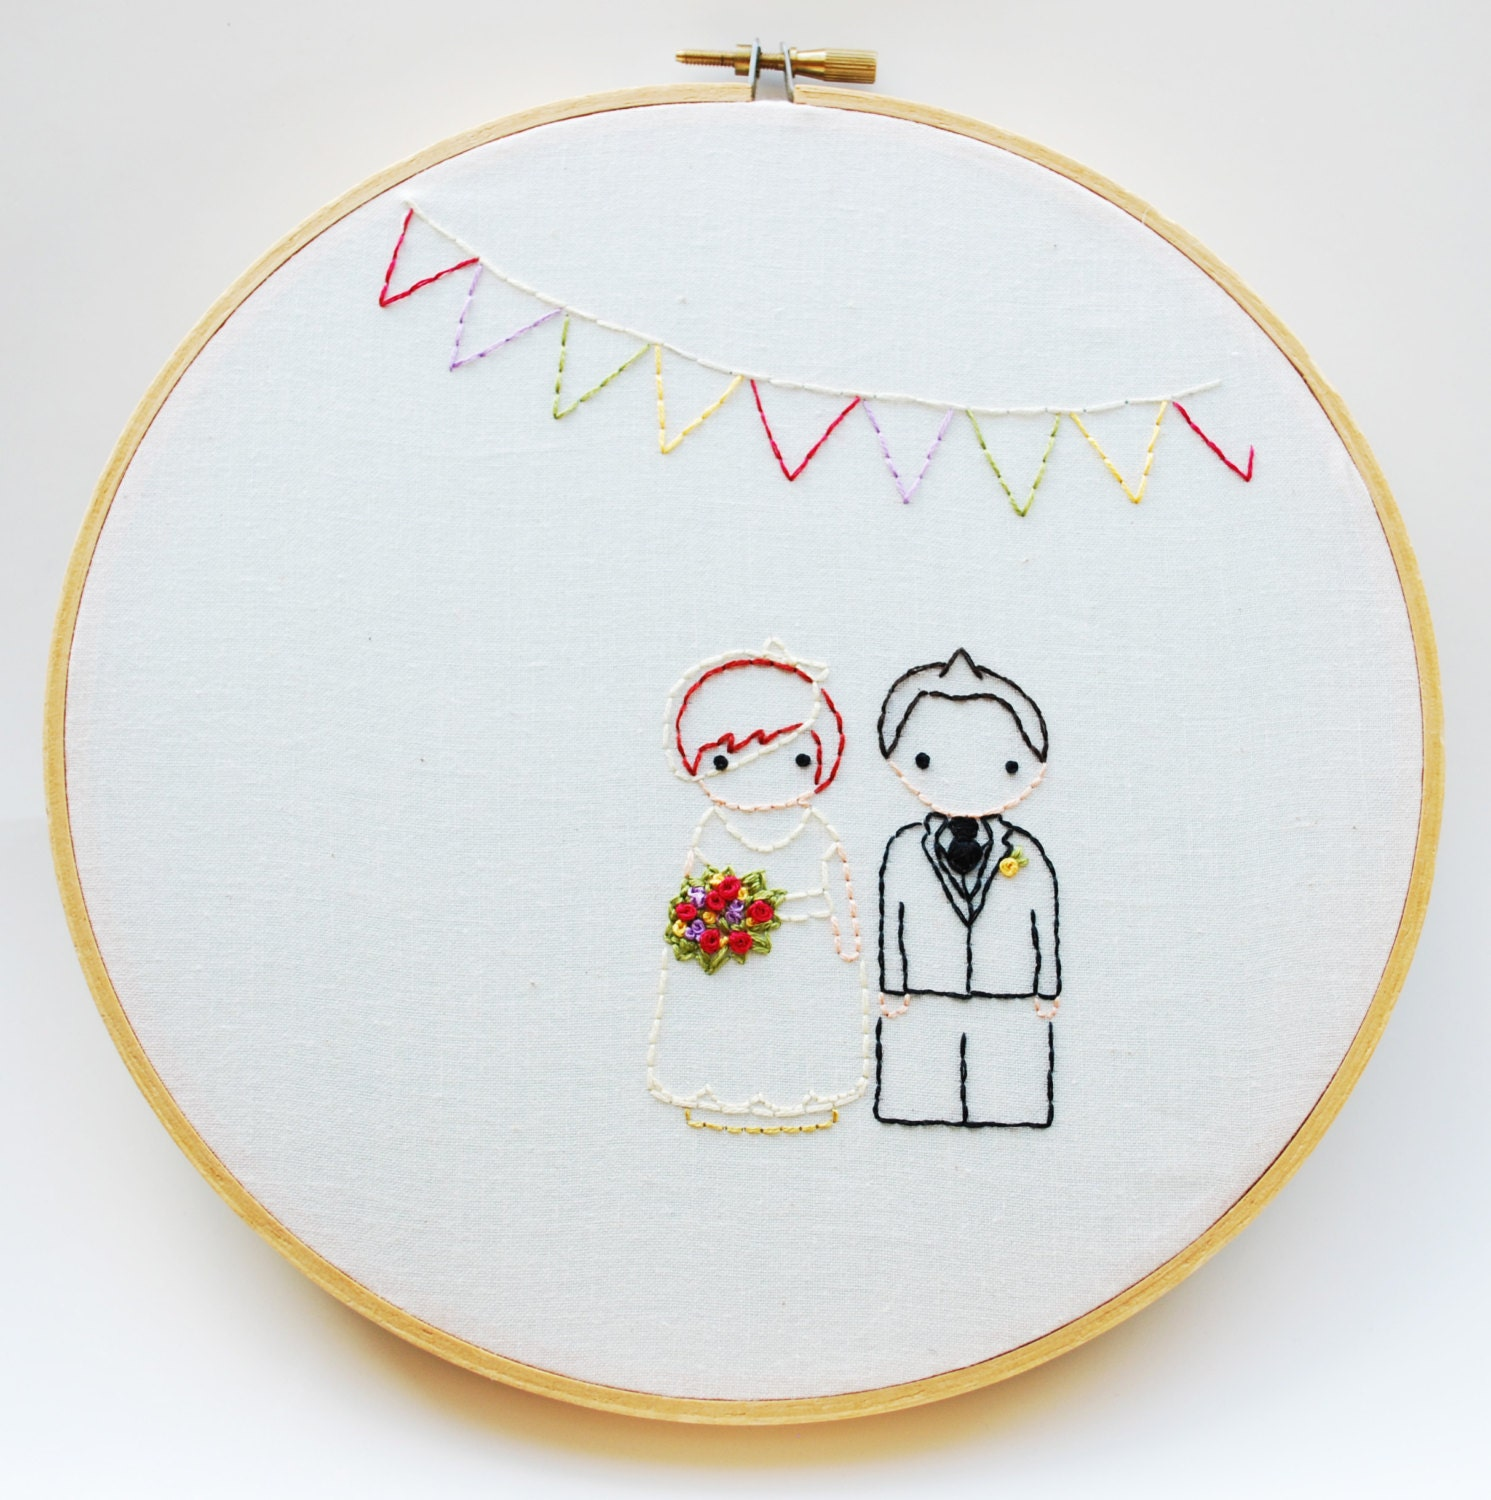 The peg doll wedding personalized embroidery